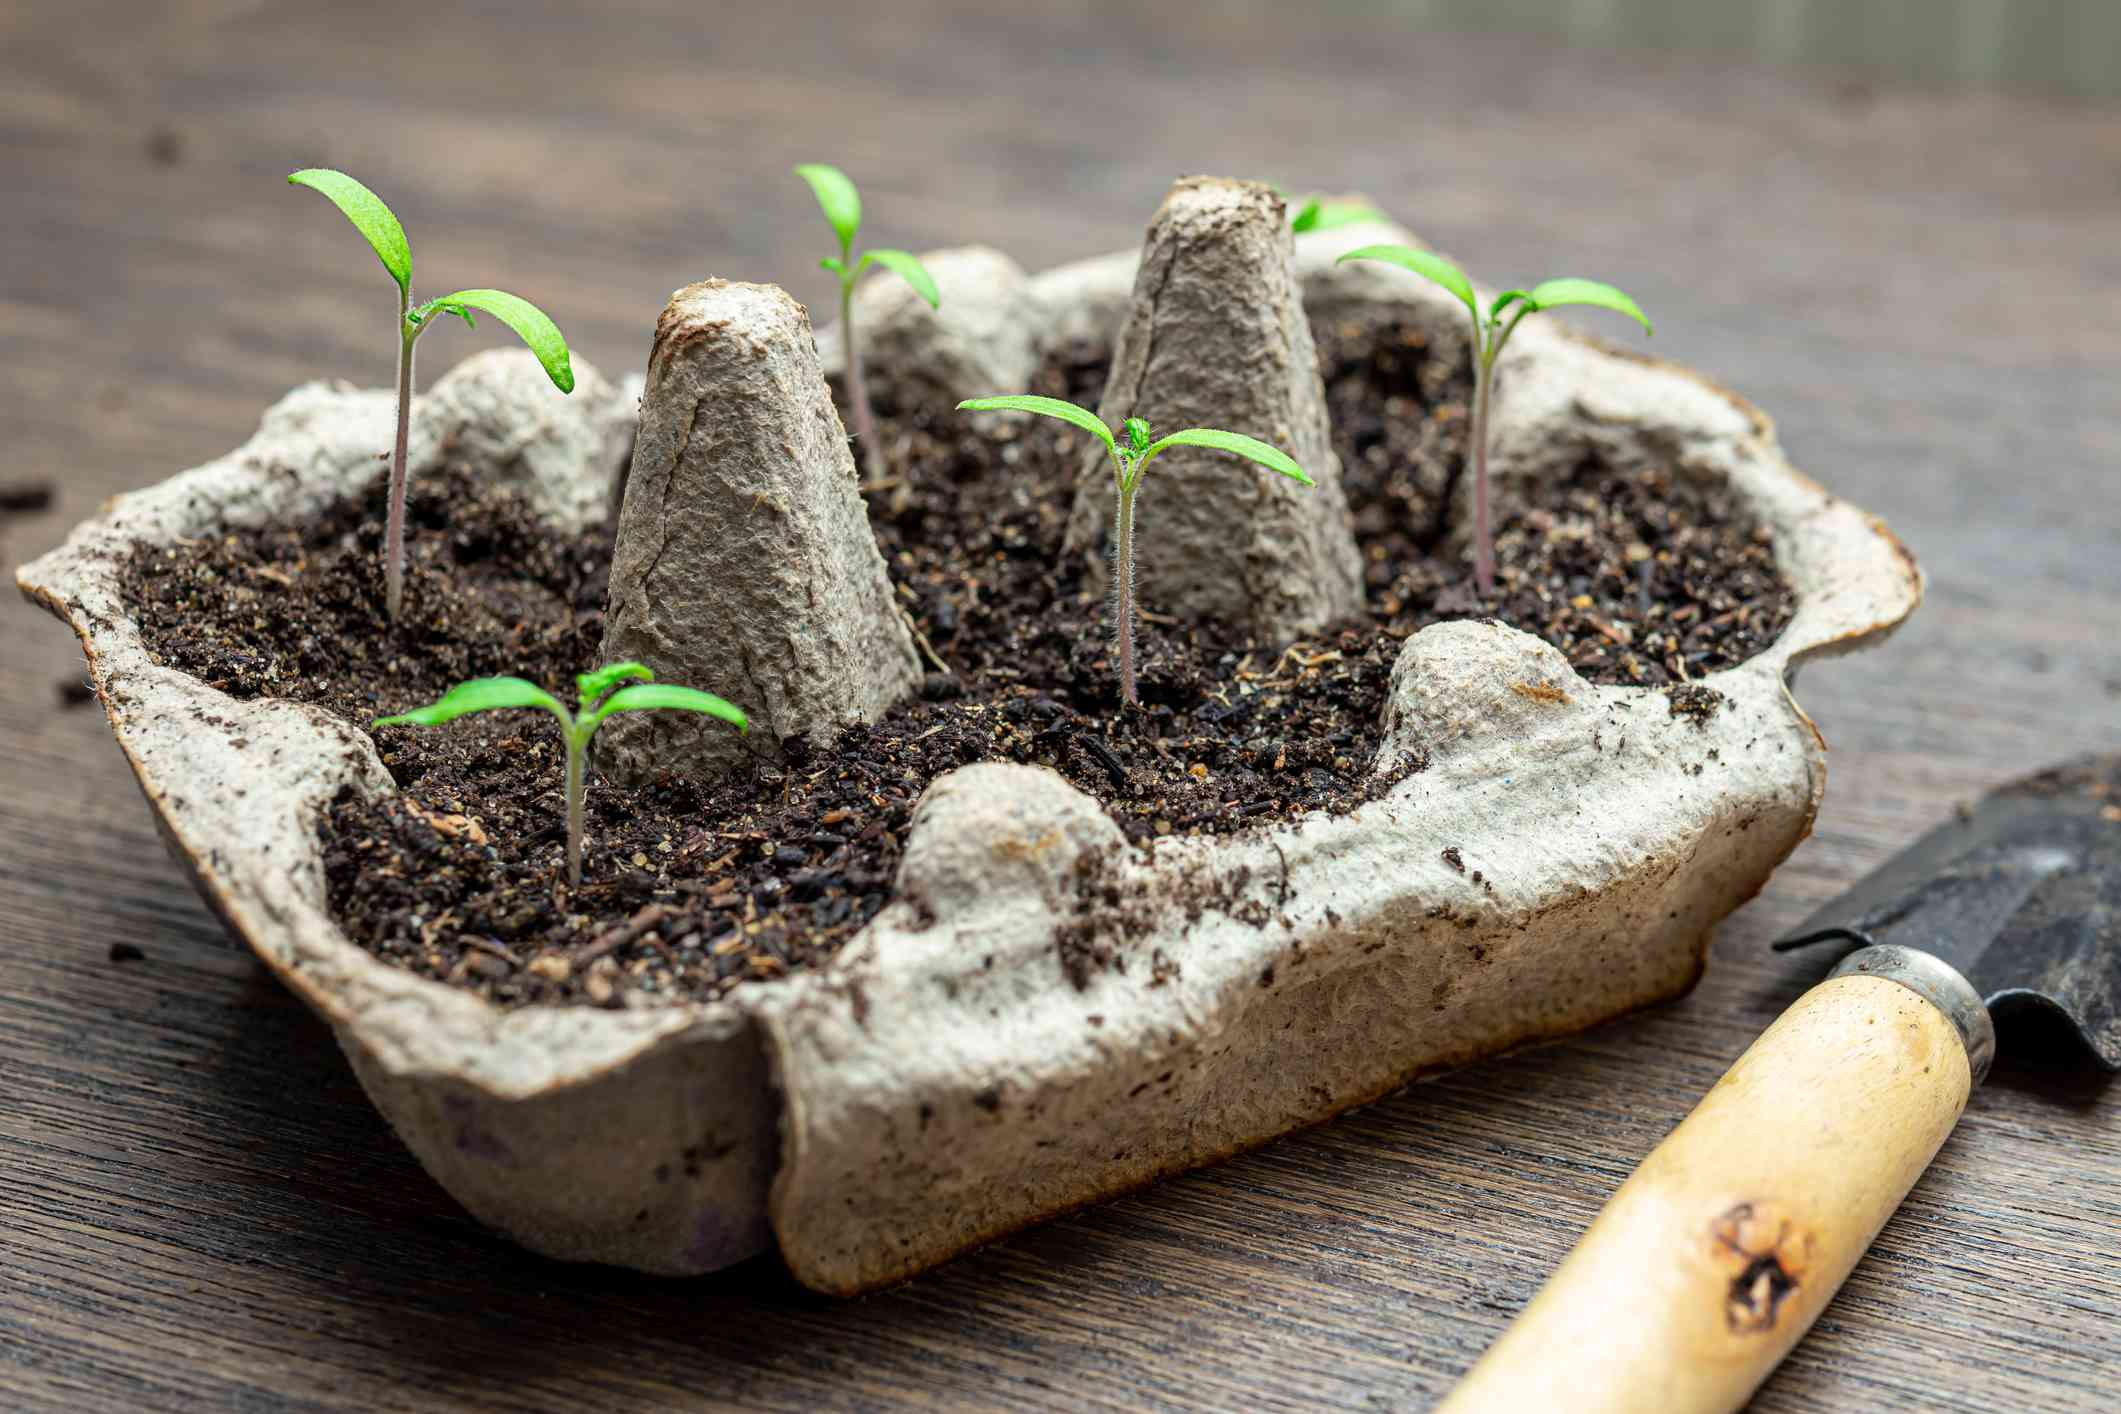 Reused egg box with sprouts